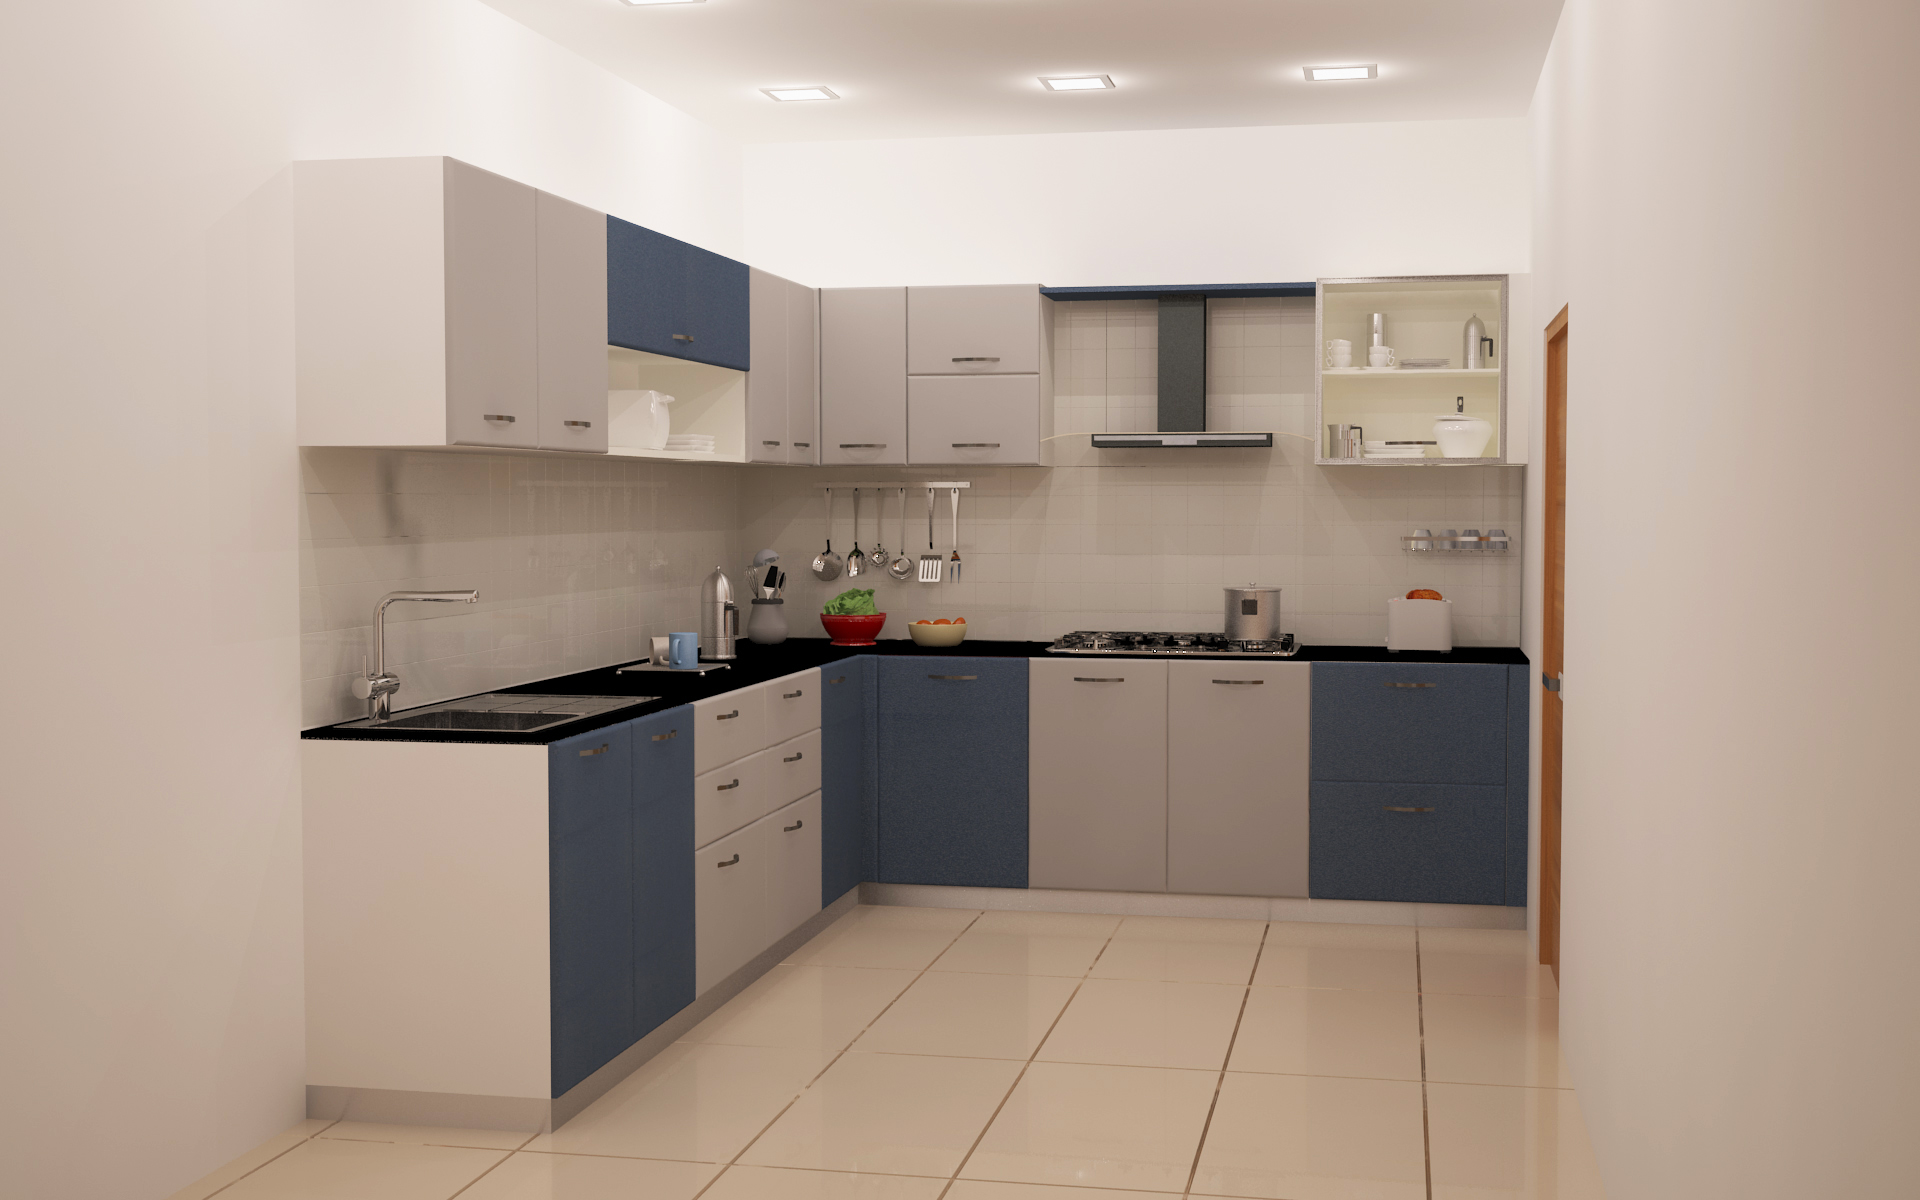 Kitchen Interior Design Whitefield